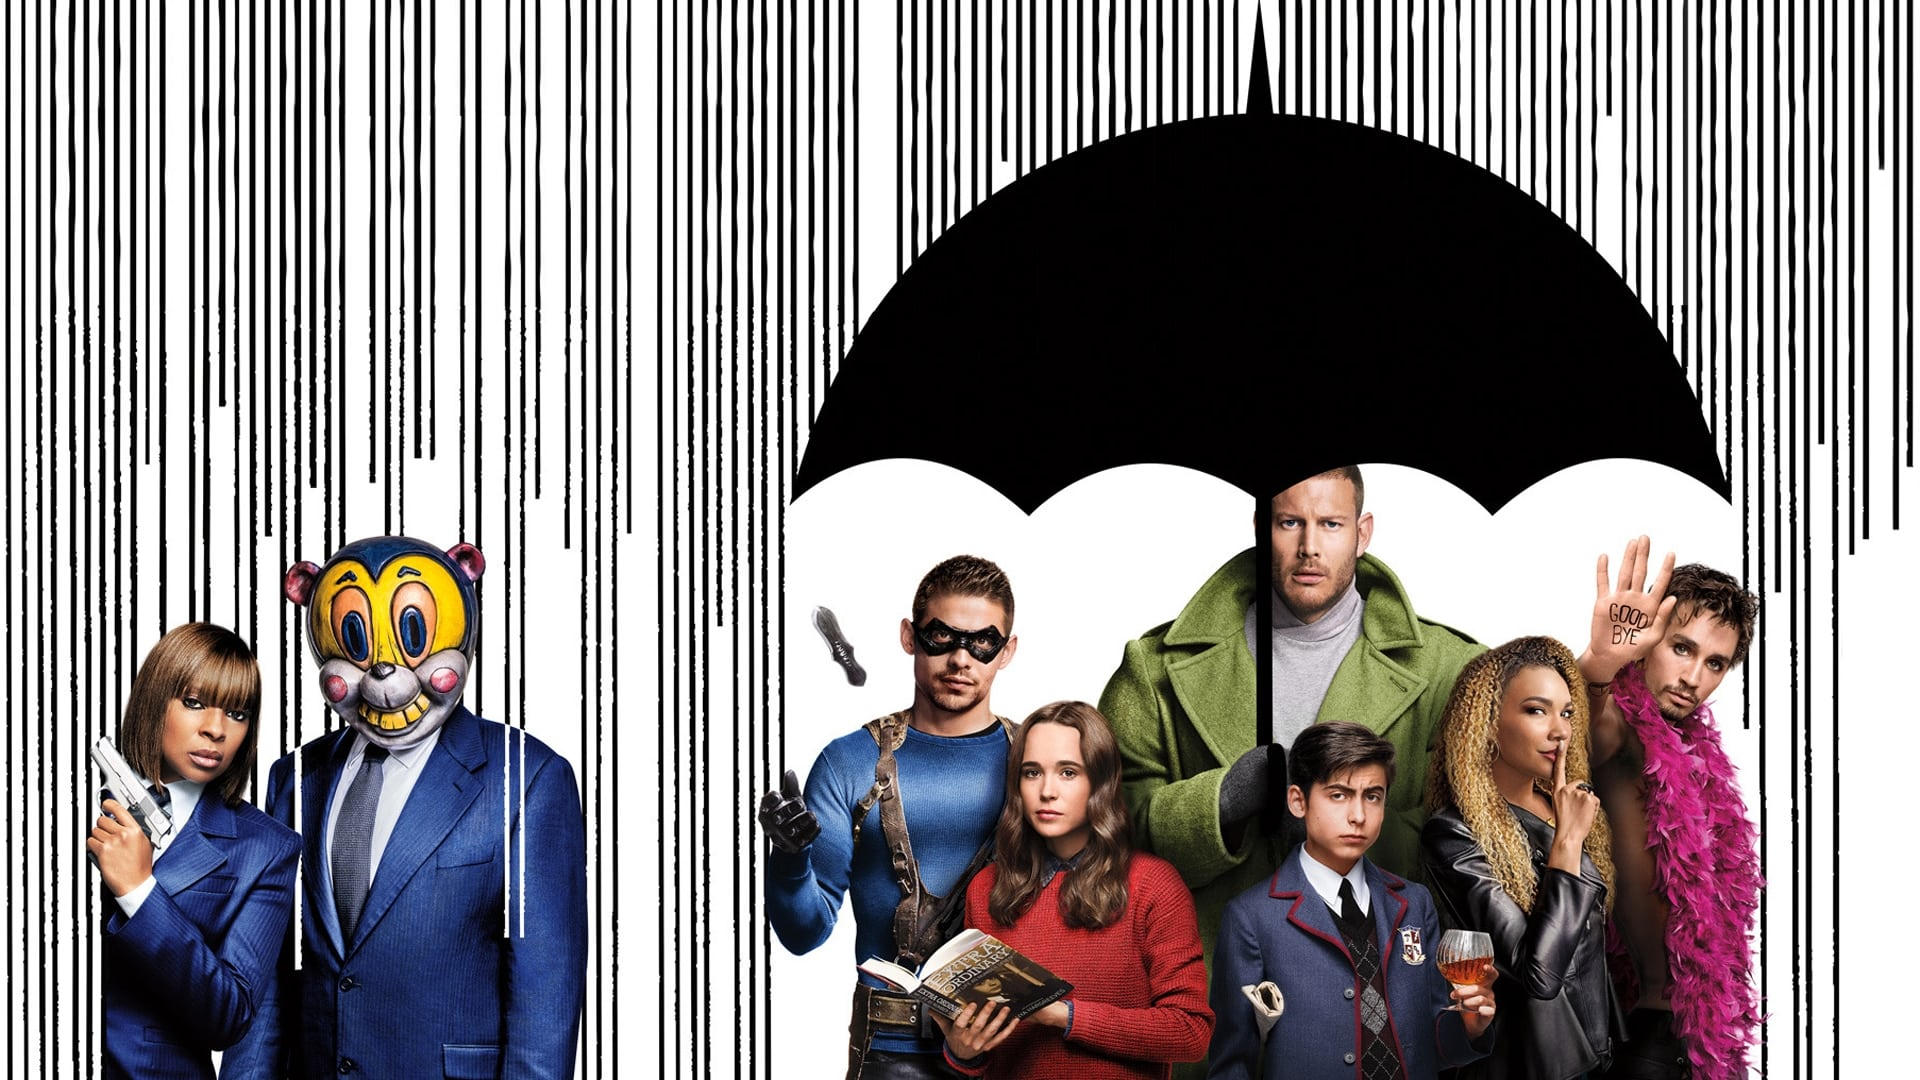 The Umbrella Academy - Season 2